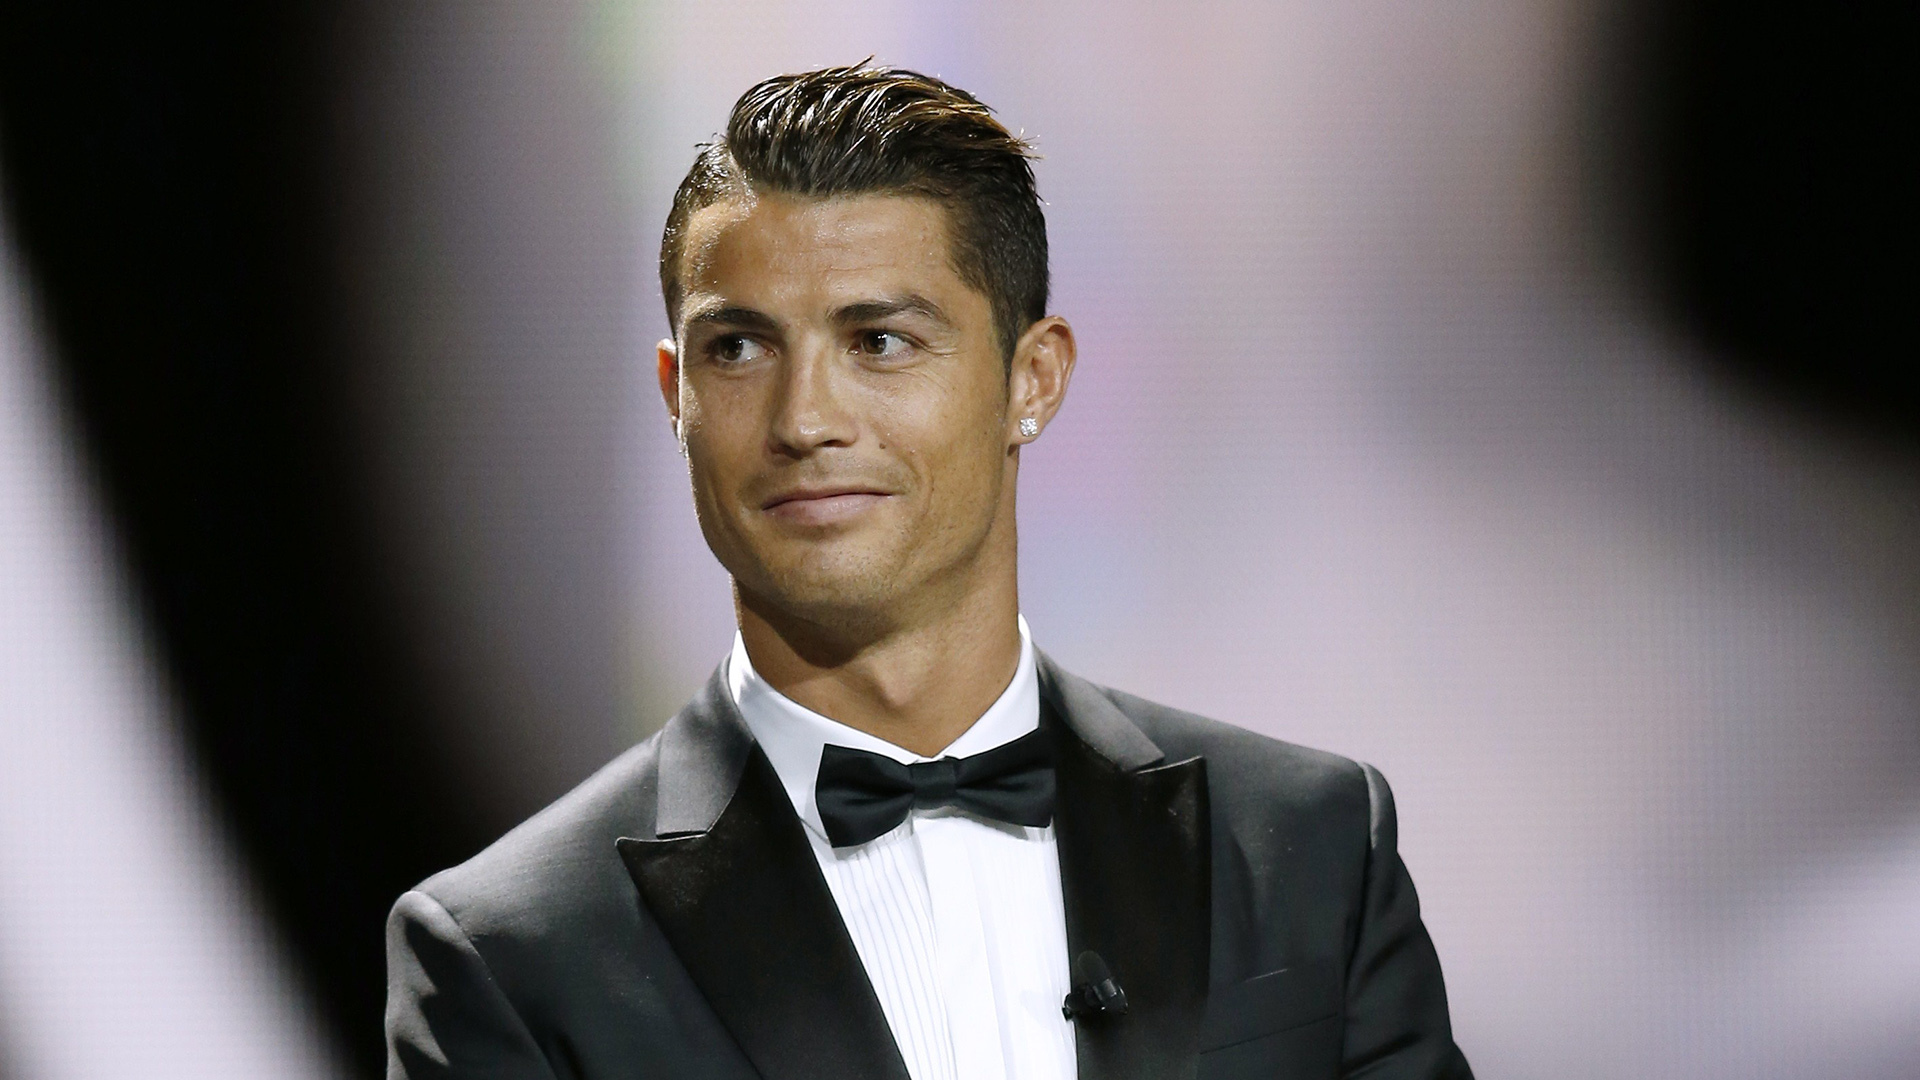 cristiano ronaldo hd free football function mobile desktop download